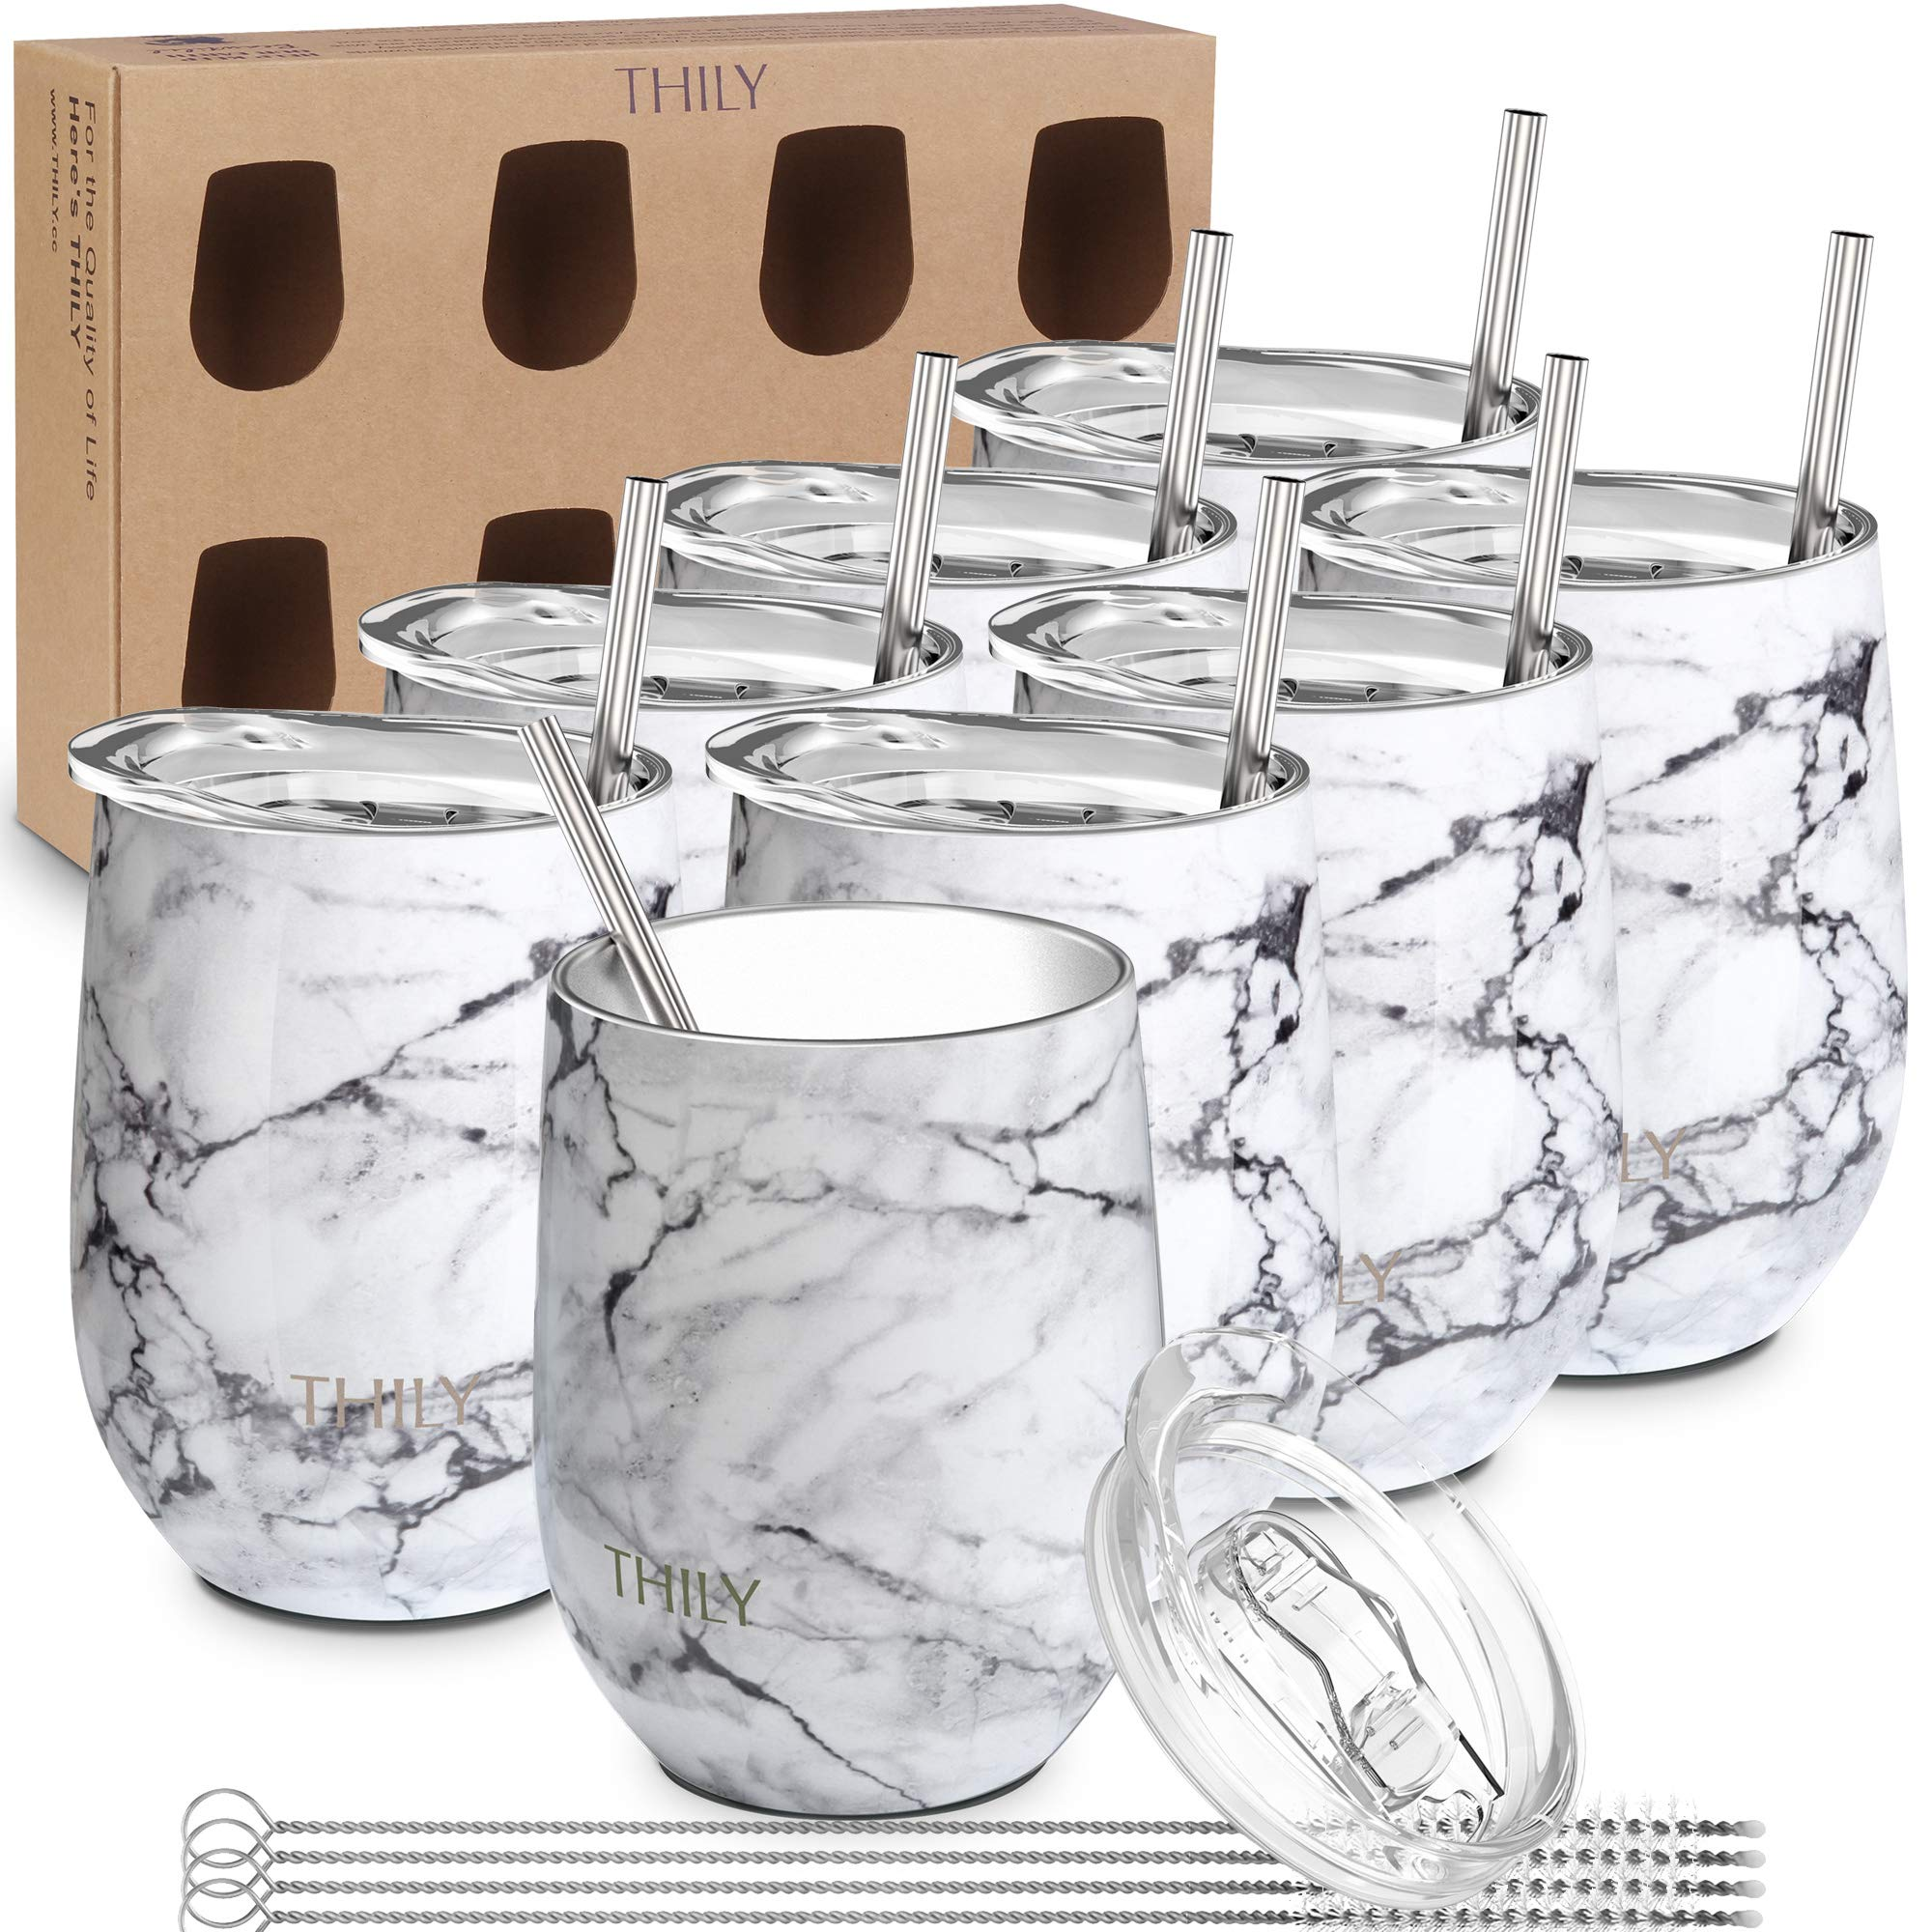 Stainless Steel Insulated Wine Tumbler - THILY 8 Pack Travel Stemless Wine Glasses Set with Sliding Lid and Straw, Cute Cups, Keep Hot or Cold for Wine, Coffee, White Marble